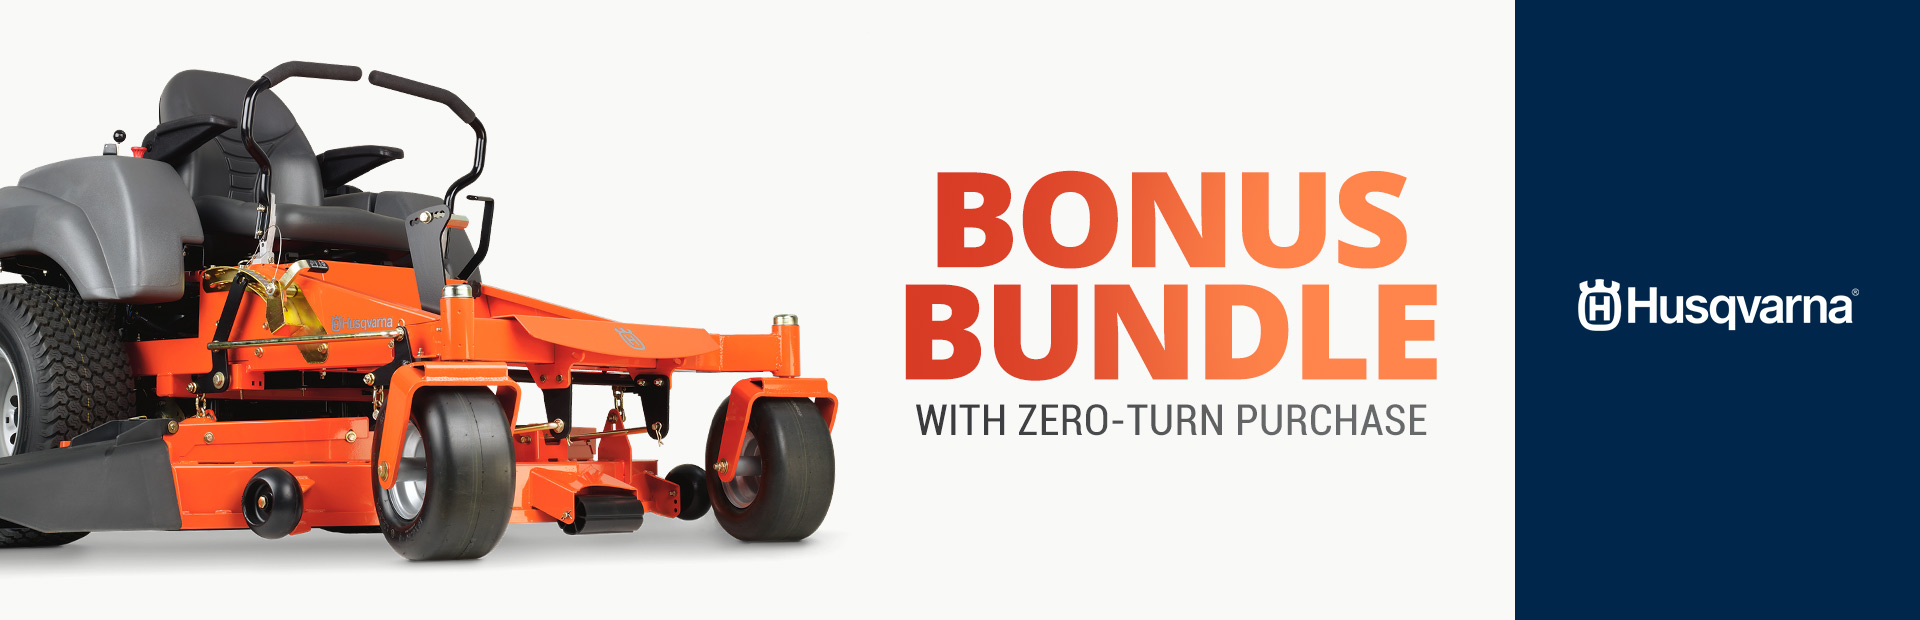 Husqvarna: Bonus Bundle With Zero-Turn Purchase